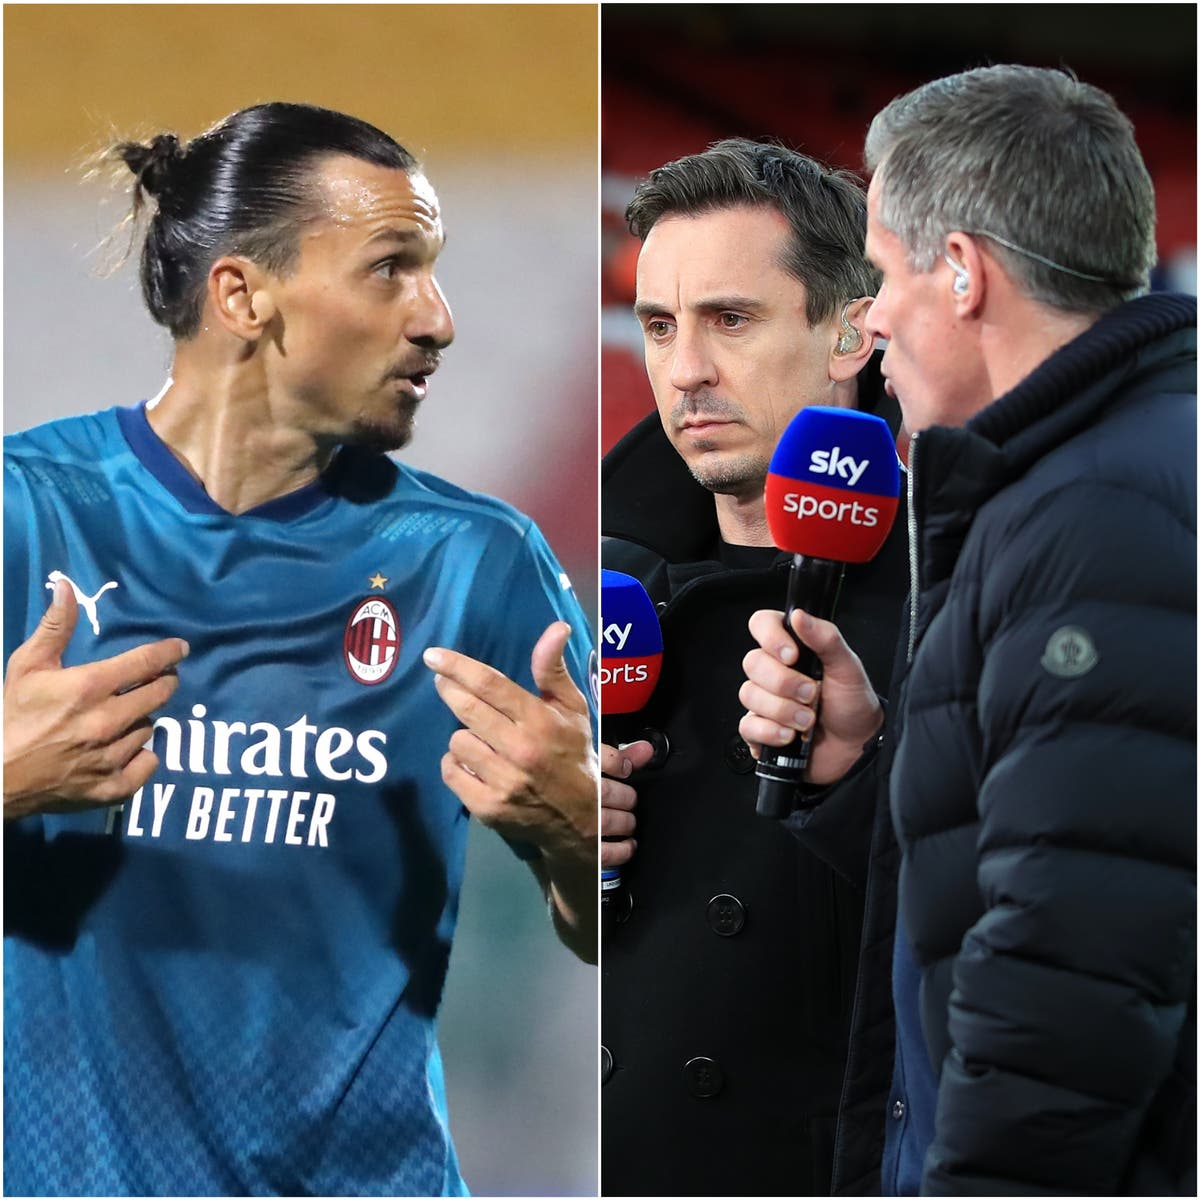 Zlatan takes flight as Neville and Carragher clash – Sunday's Sporting Social